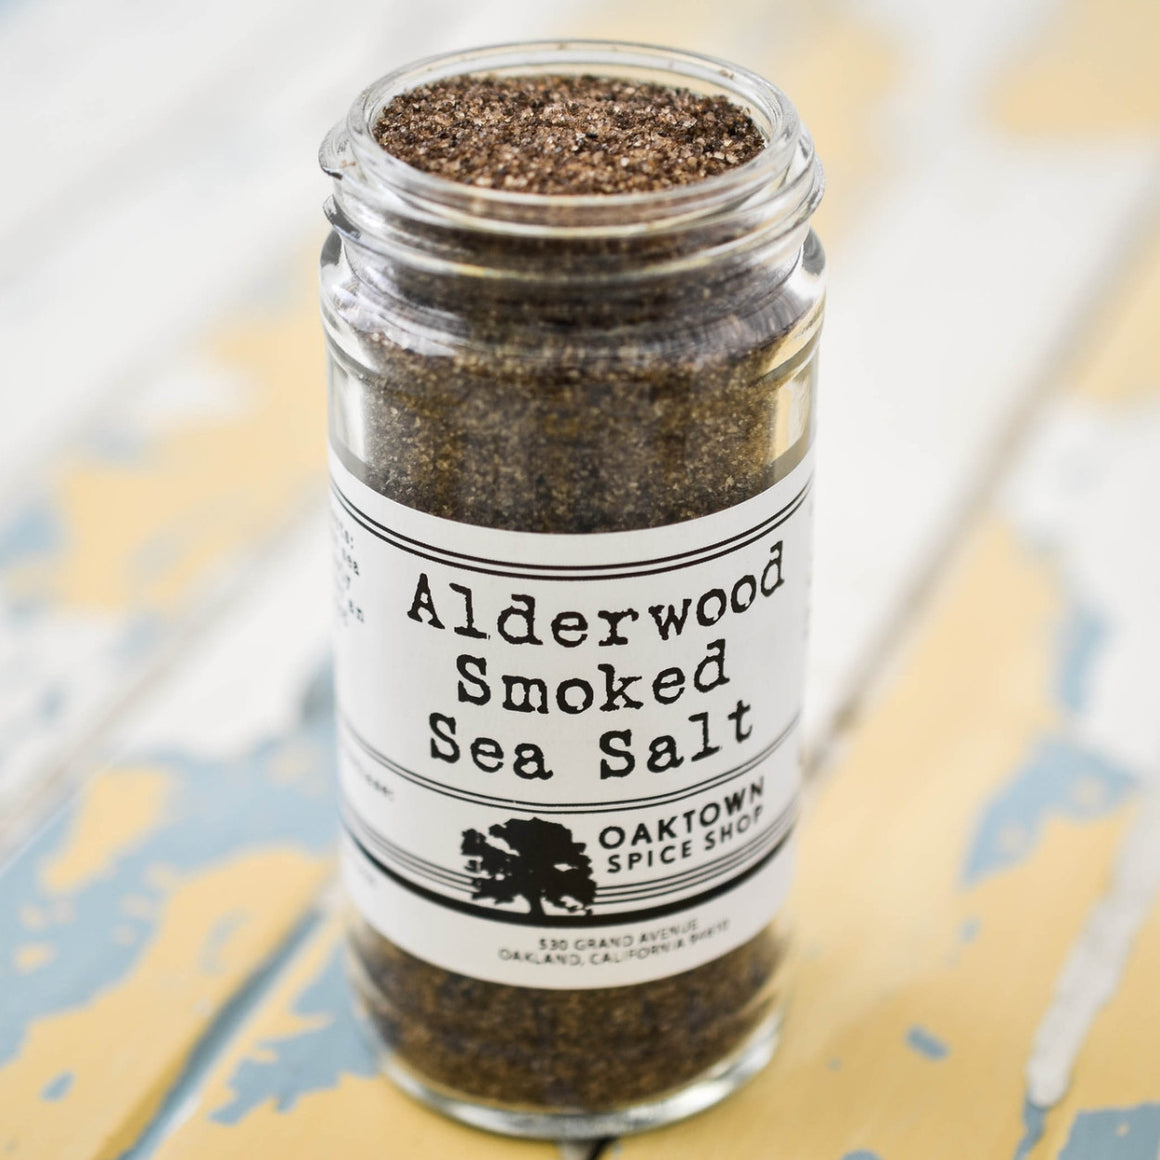 Alderwood Smoked Salt 1/2 cup jar